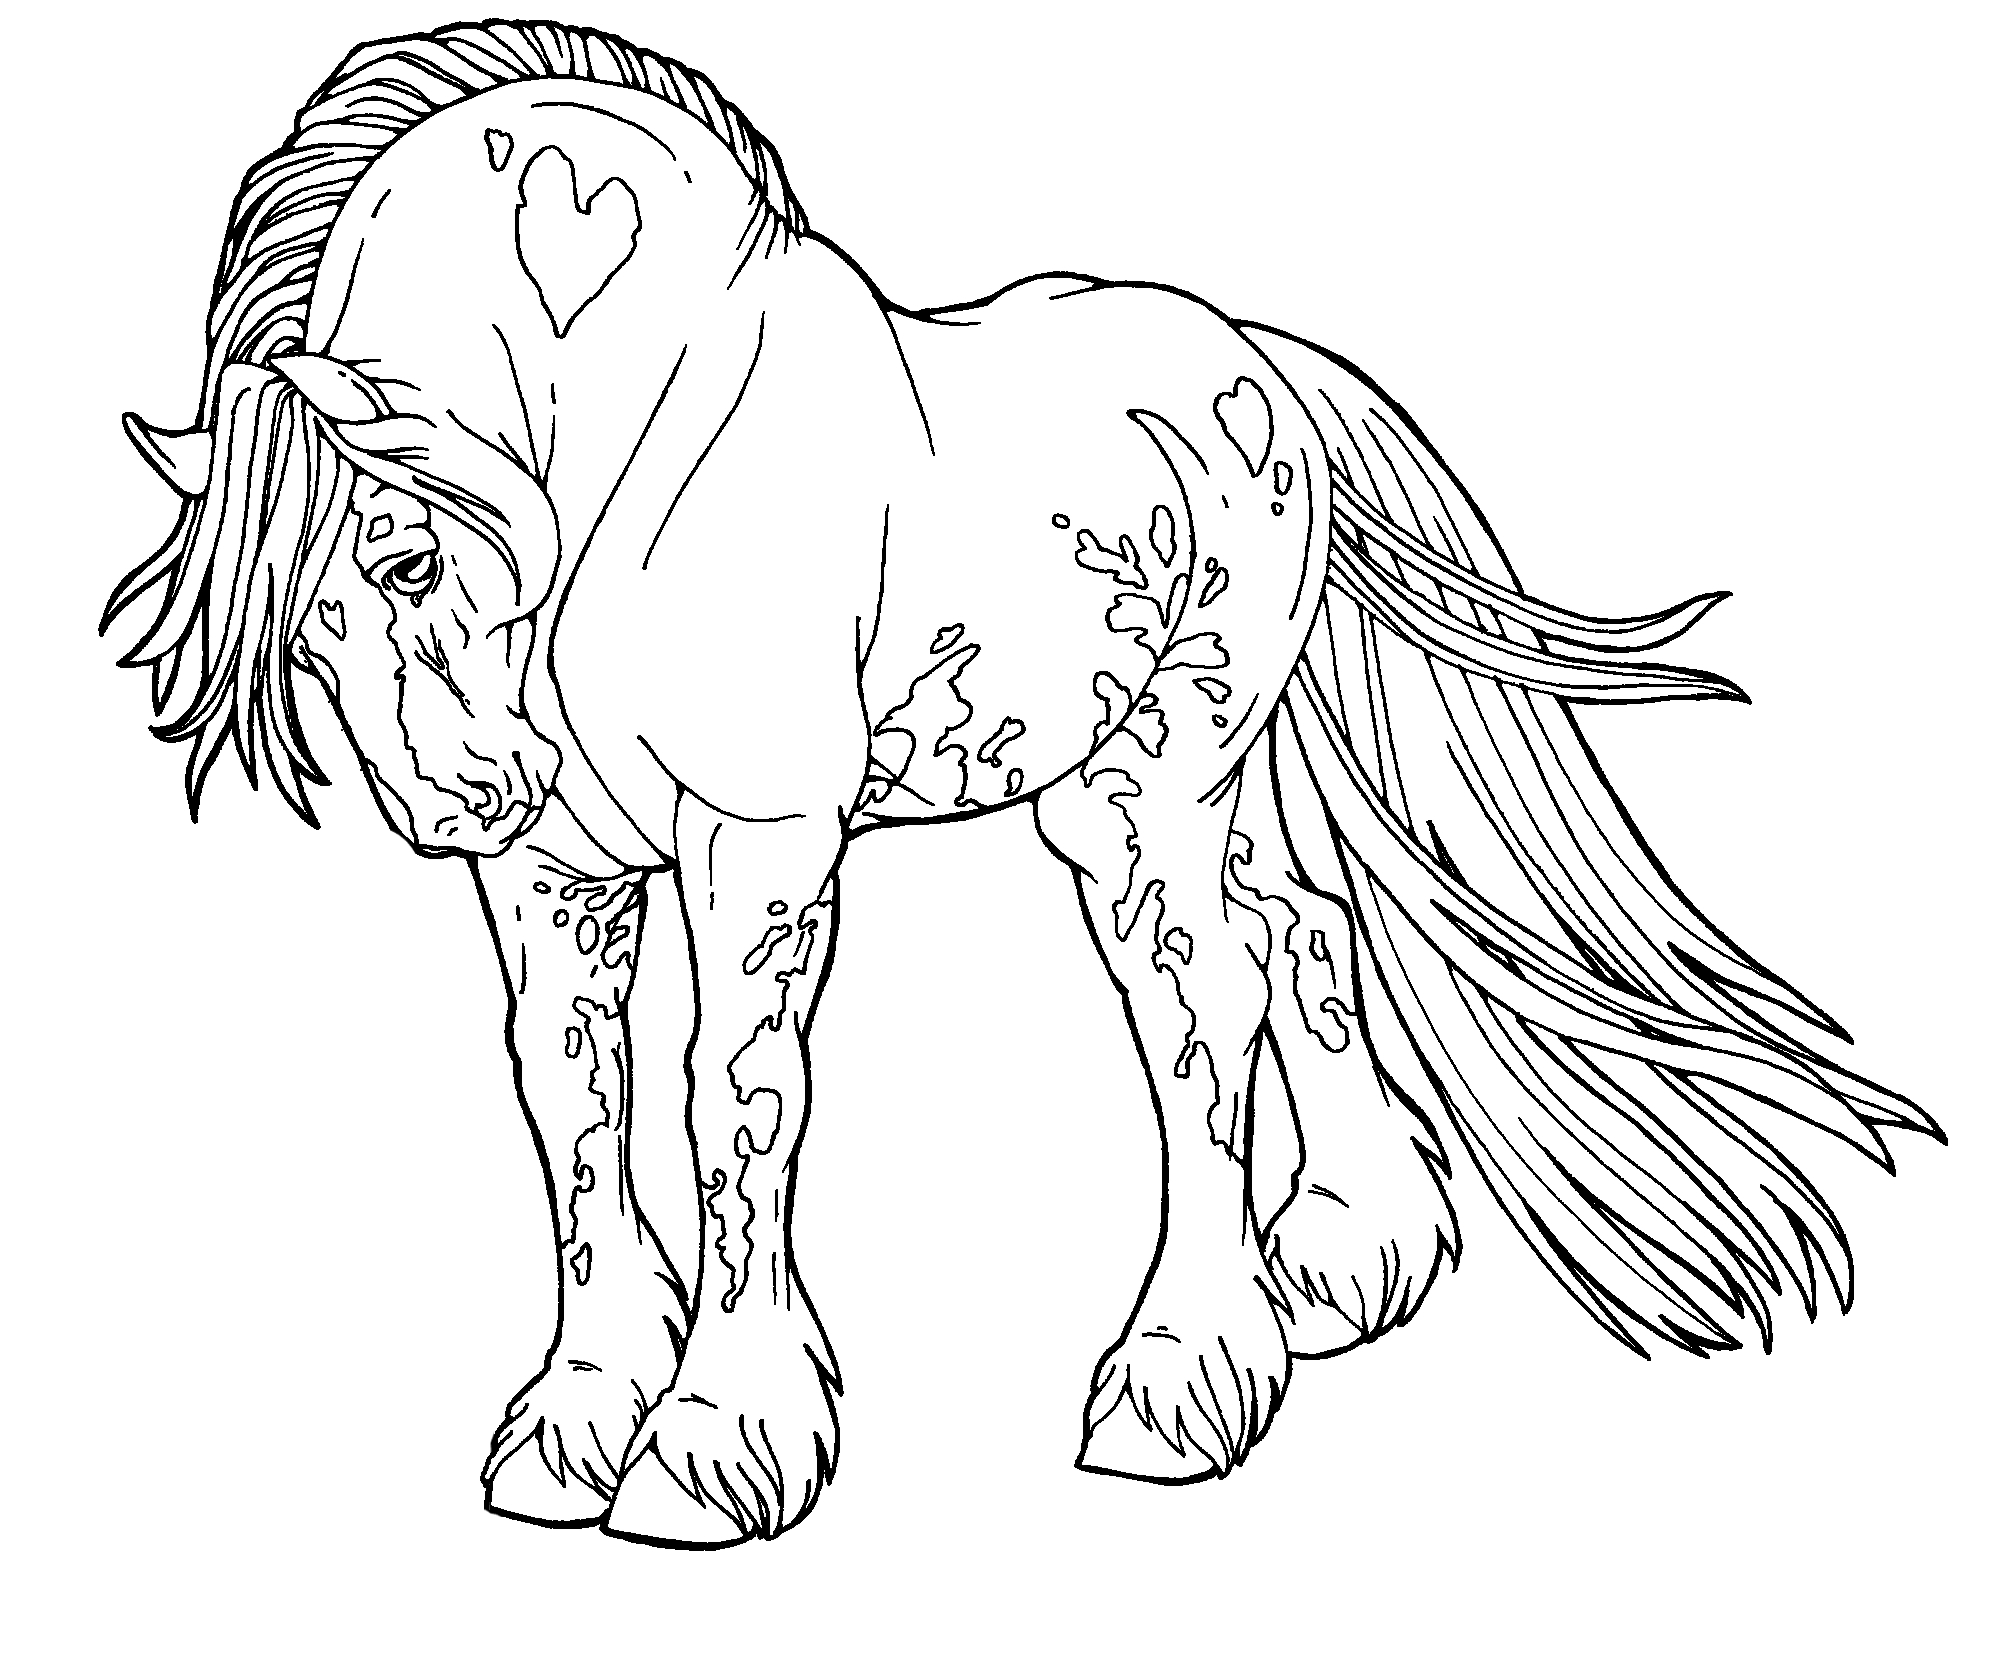 Horse Detailed Coloring Pages Gallery Of Horse Detailed Coloring Pages Gallery